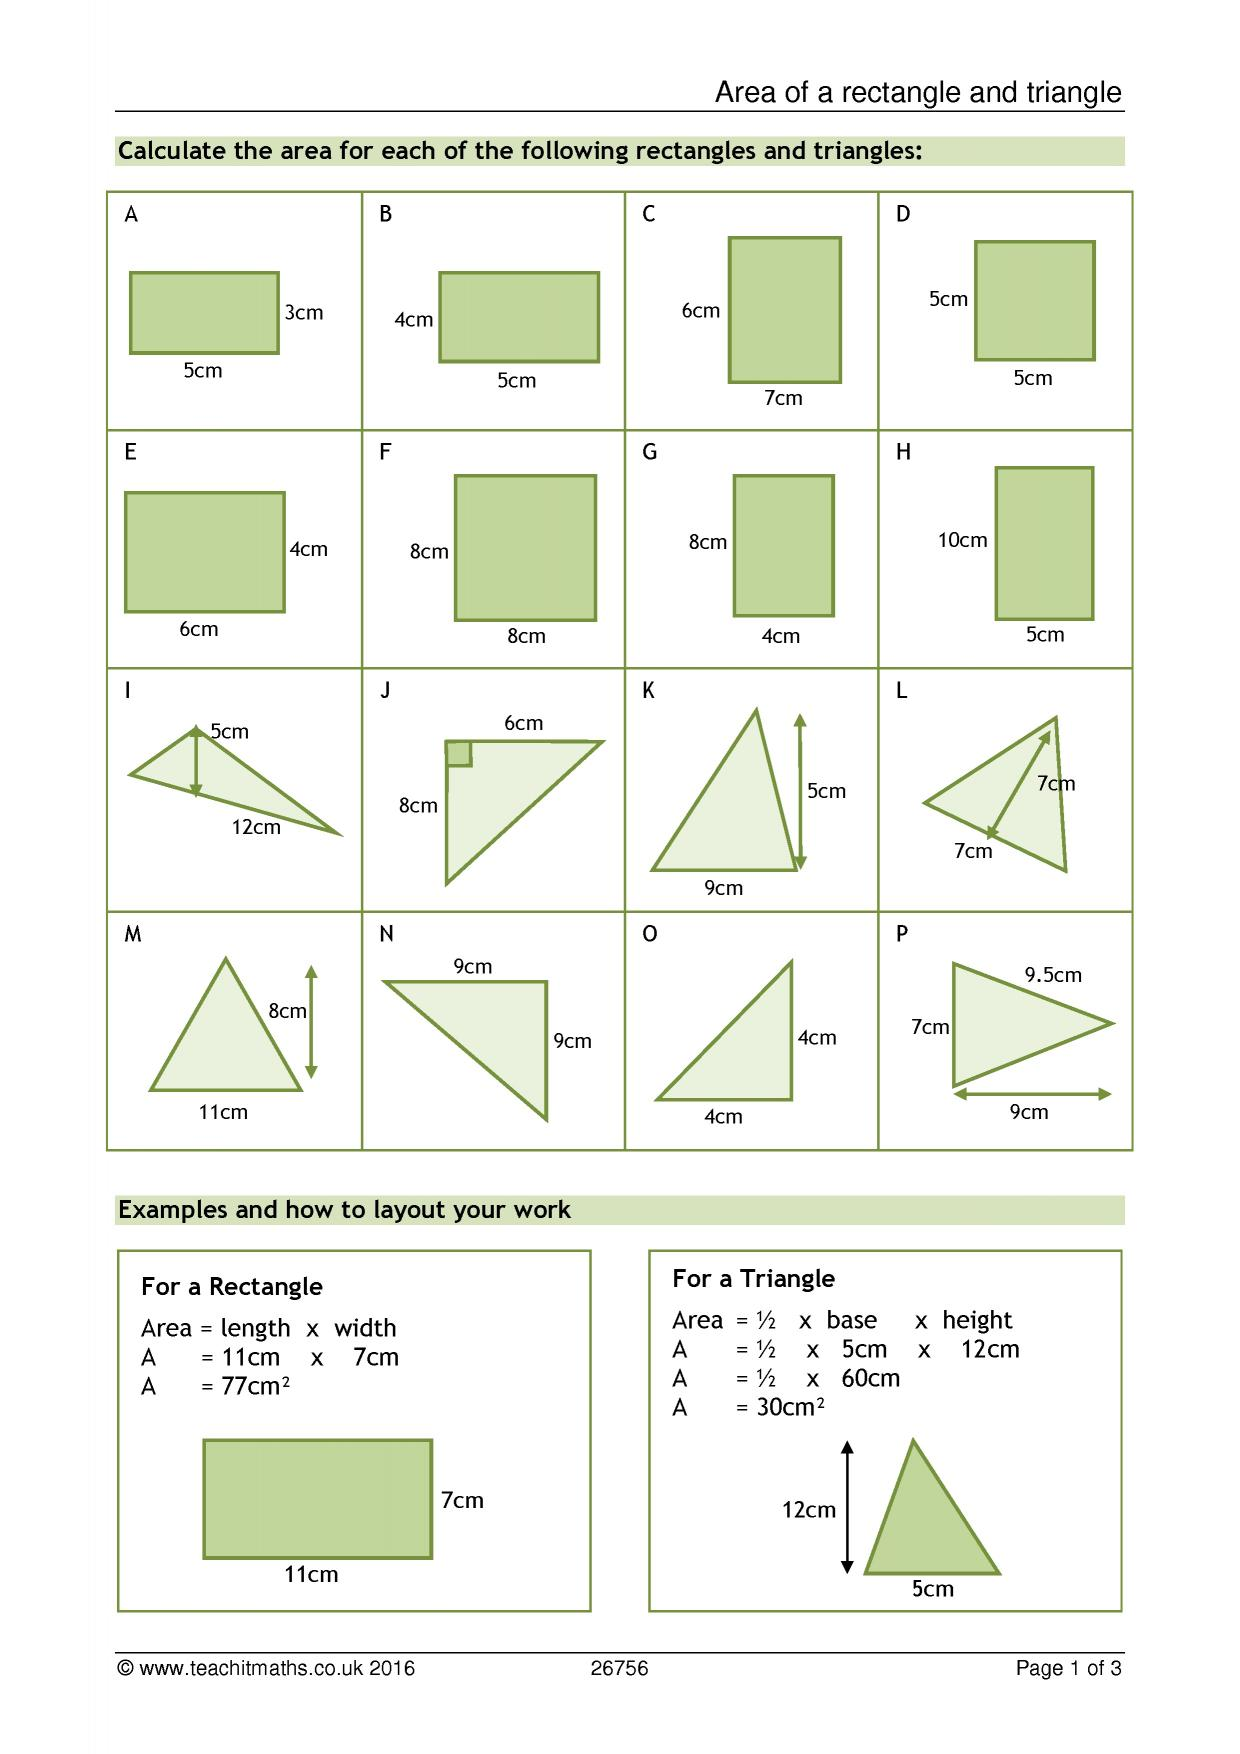 Area of triangles and rectangles worksheet pdf